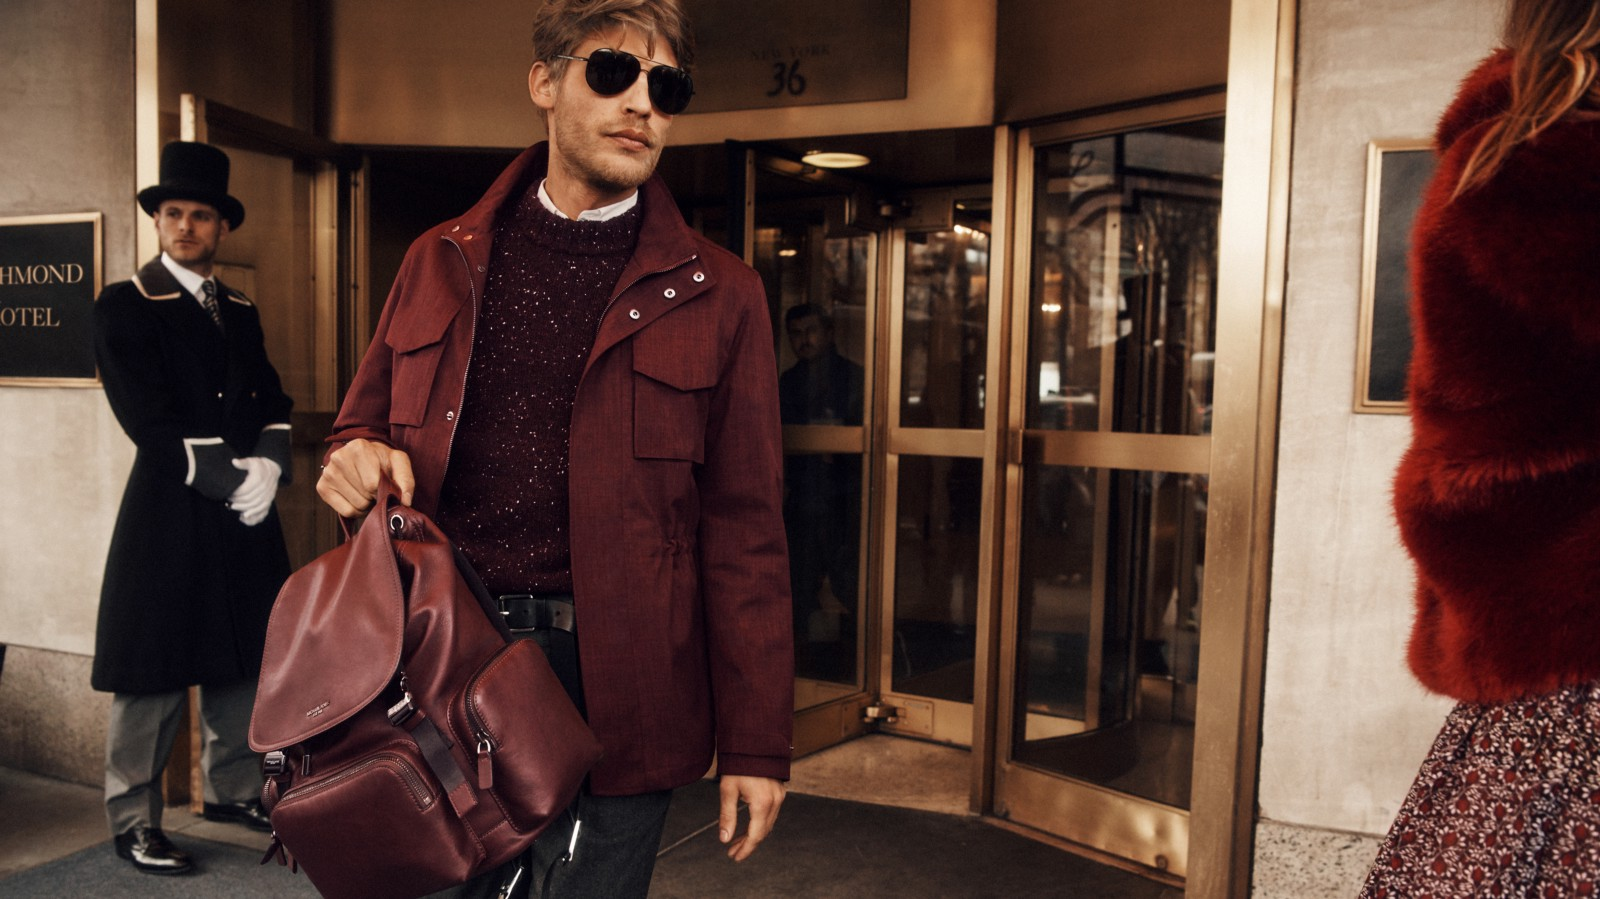 ba2f2eedd0a3 A NEW YORK STORY  MICHAEL KORS  NEW FALL 2018 MICHAEL MICHAEL KORS AND MENS  AD CAMPAIGN